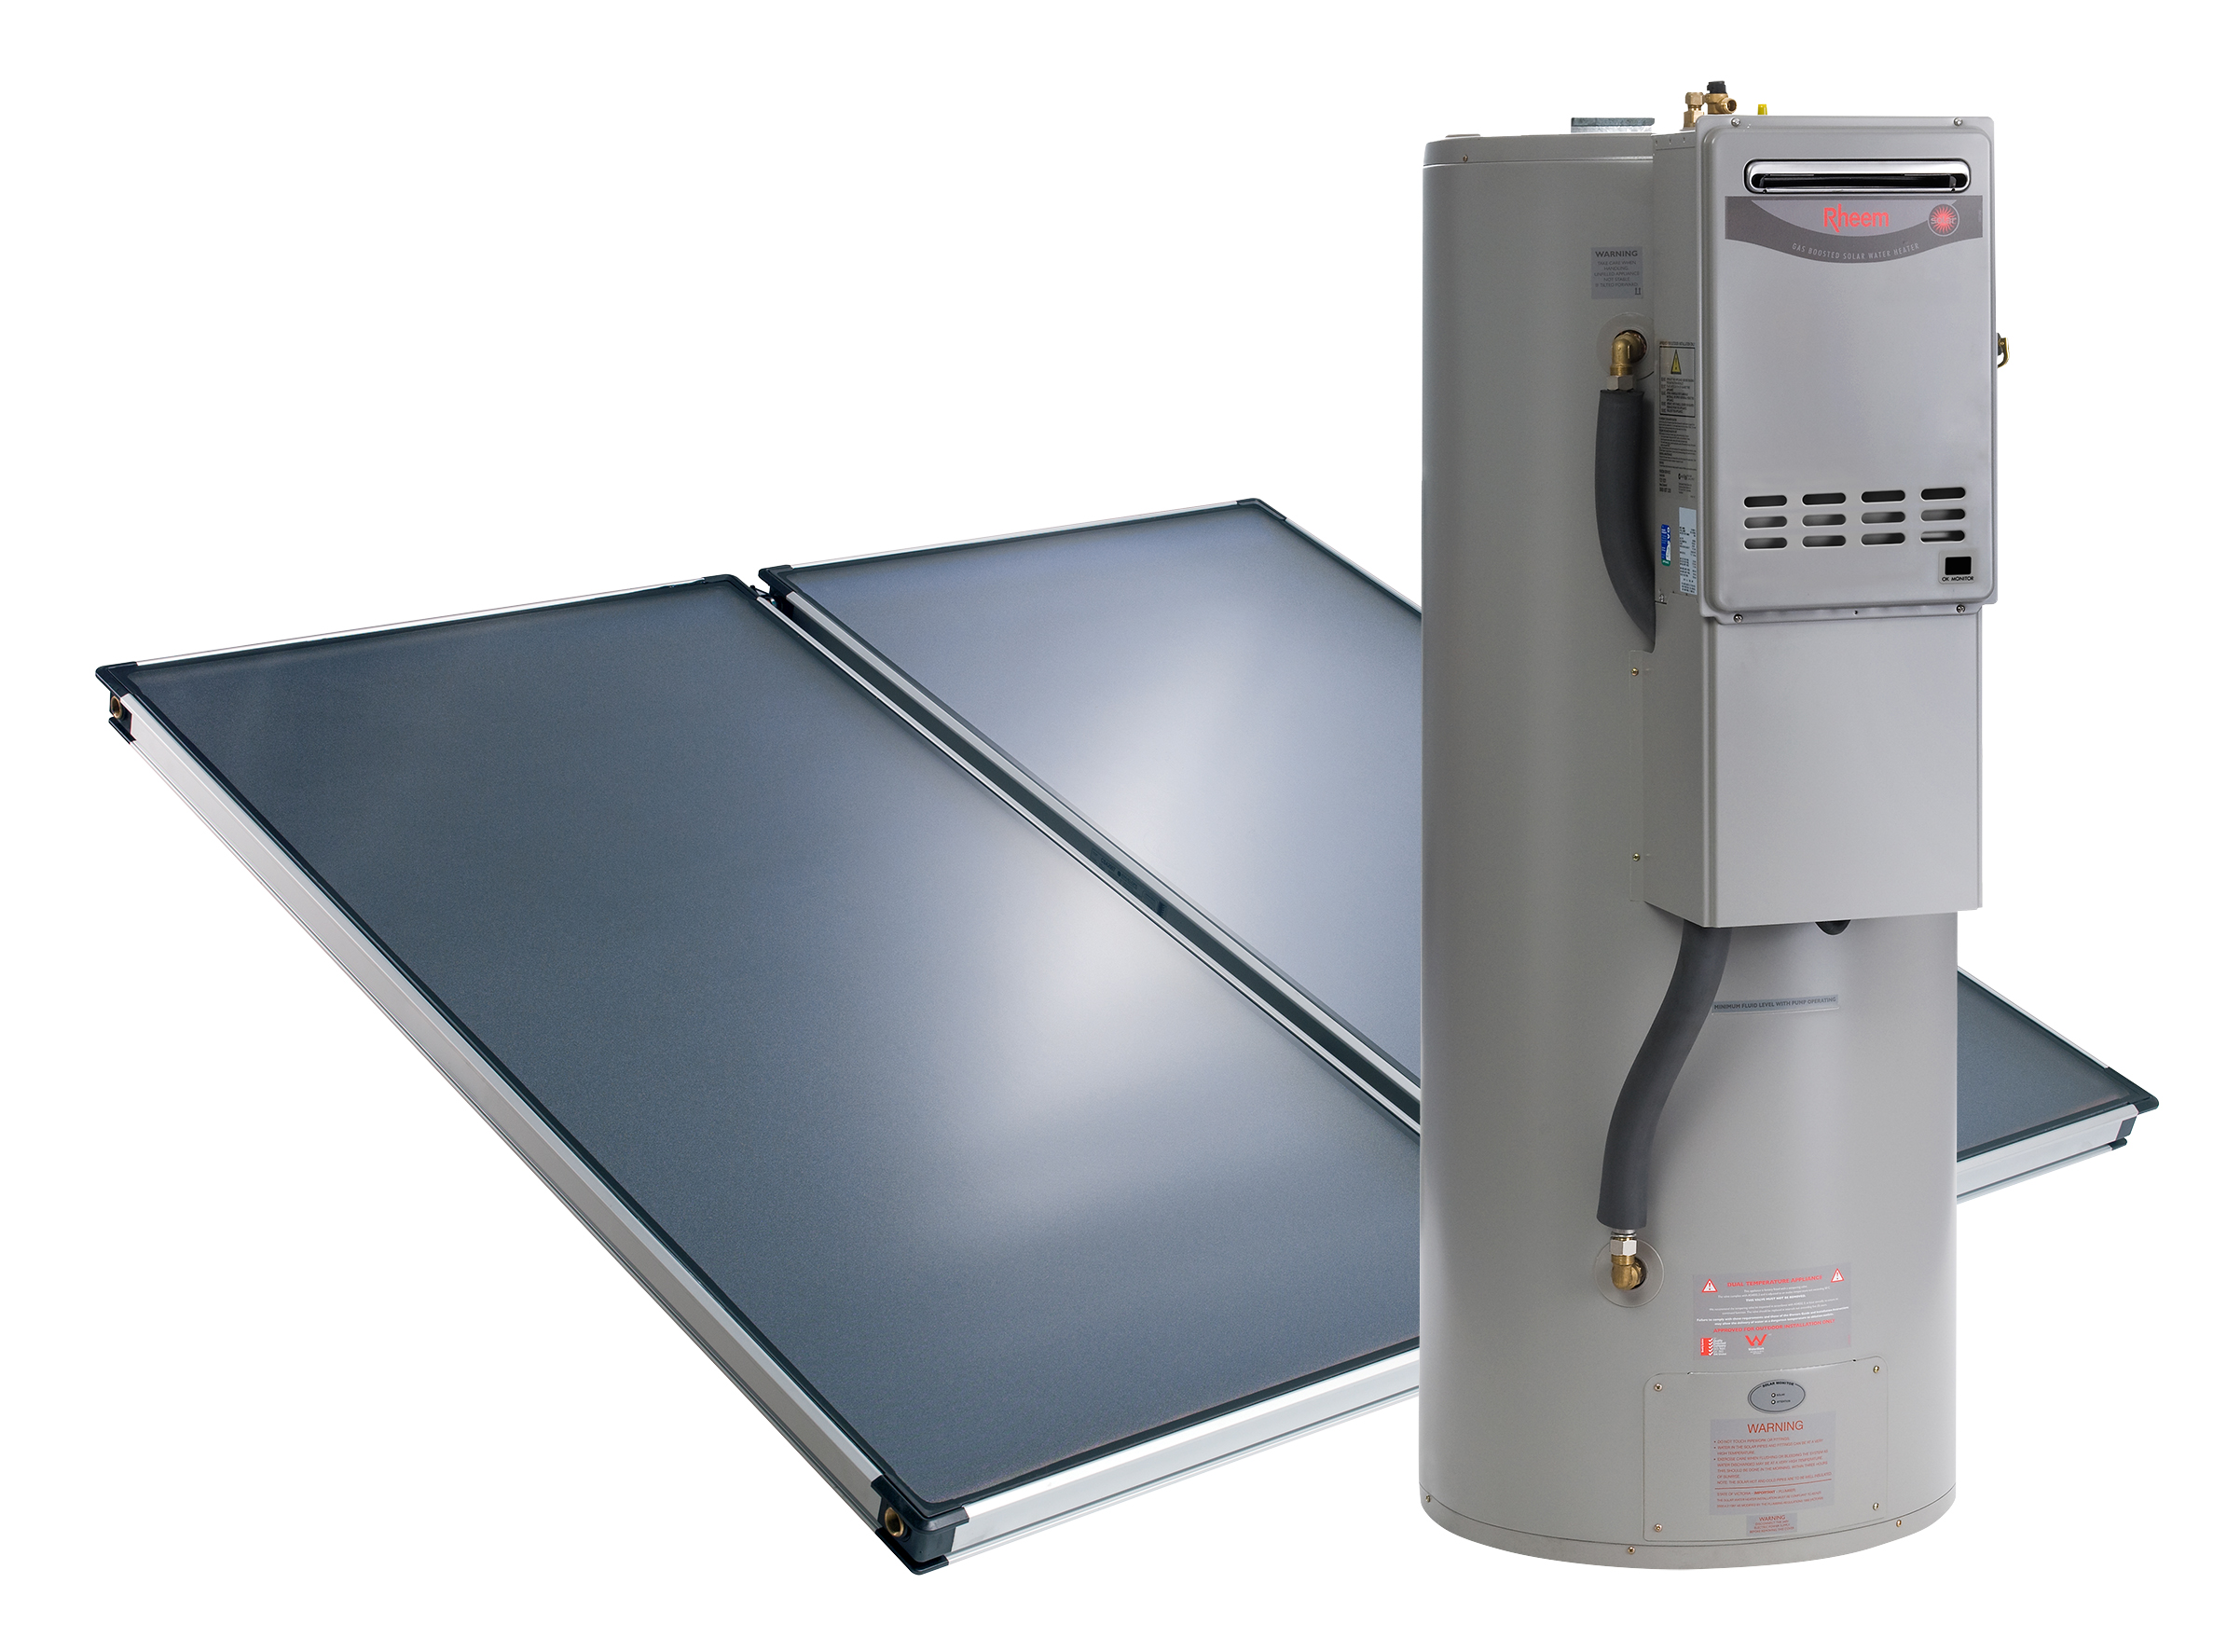 Solahart Split Solar Hot Water System Heater Diagram Free Collection Of Pictures The Premier Loline 596270gas Boosted